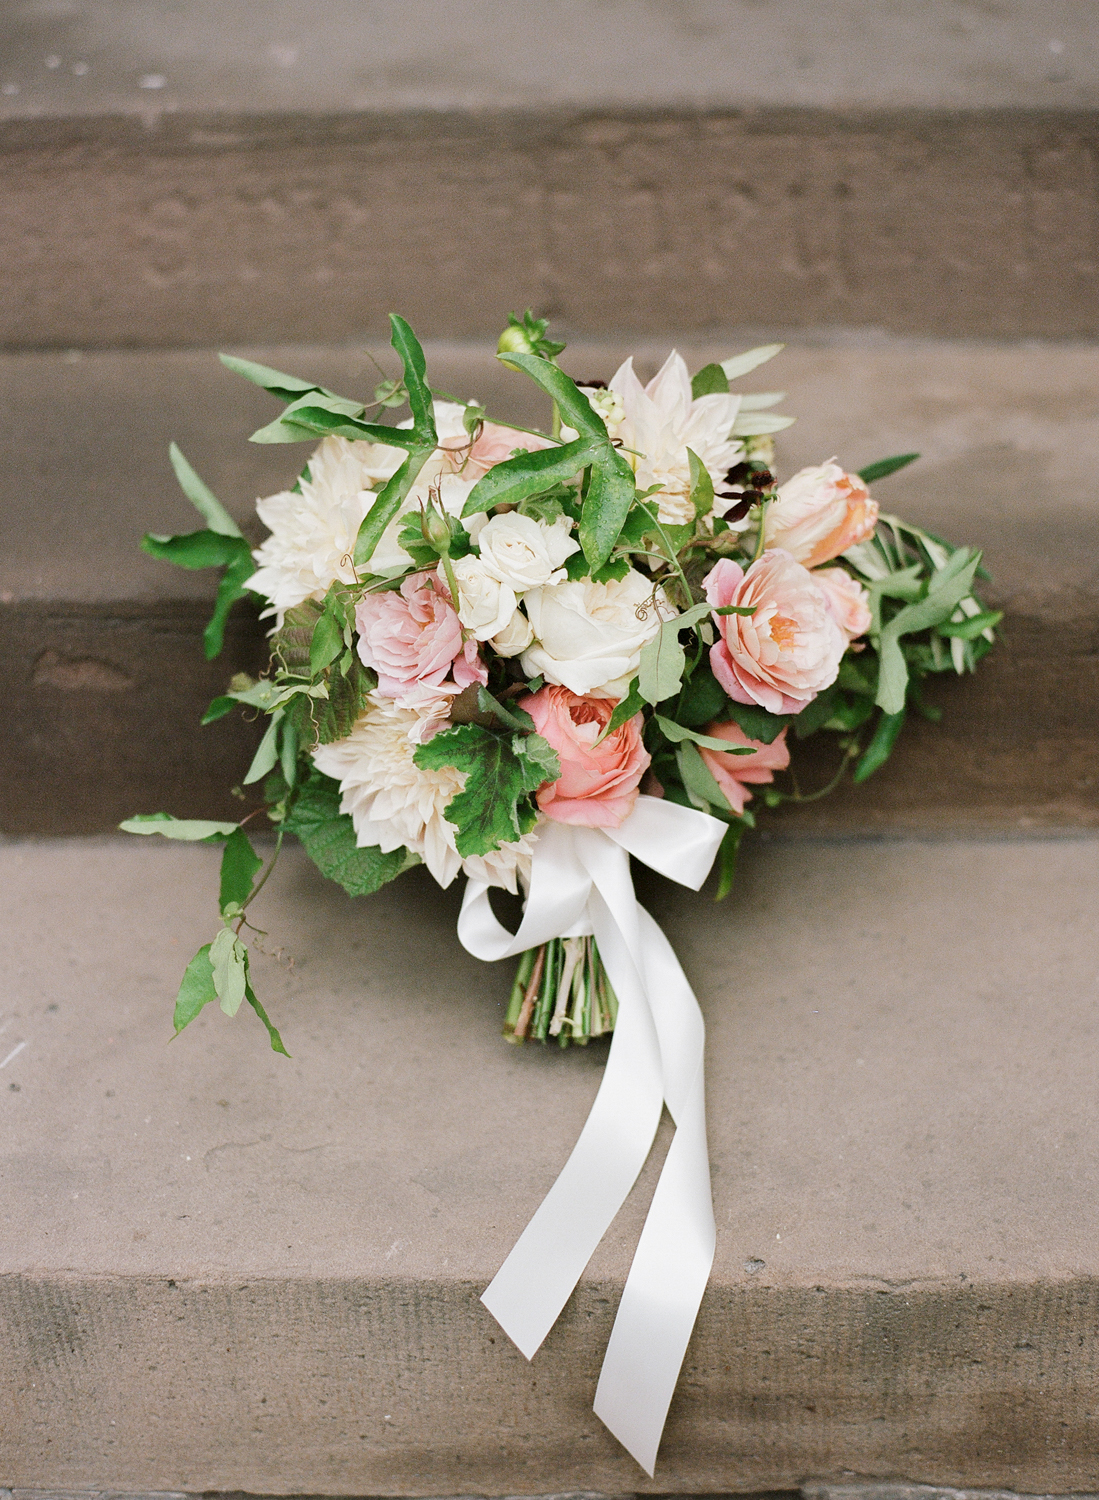 Old World NYC Wedding at the Highline Hotel - Flowers by Denise Fasanello Flowers - Photo by Heather Waraska 1.jpg